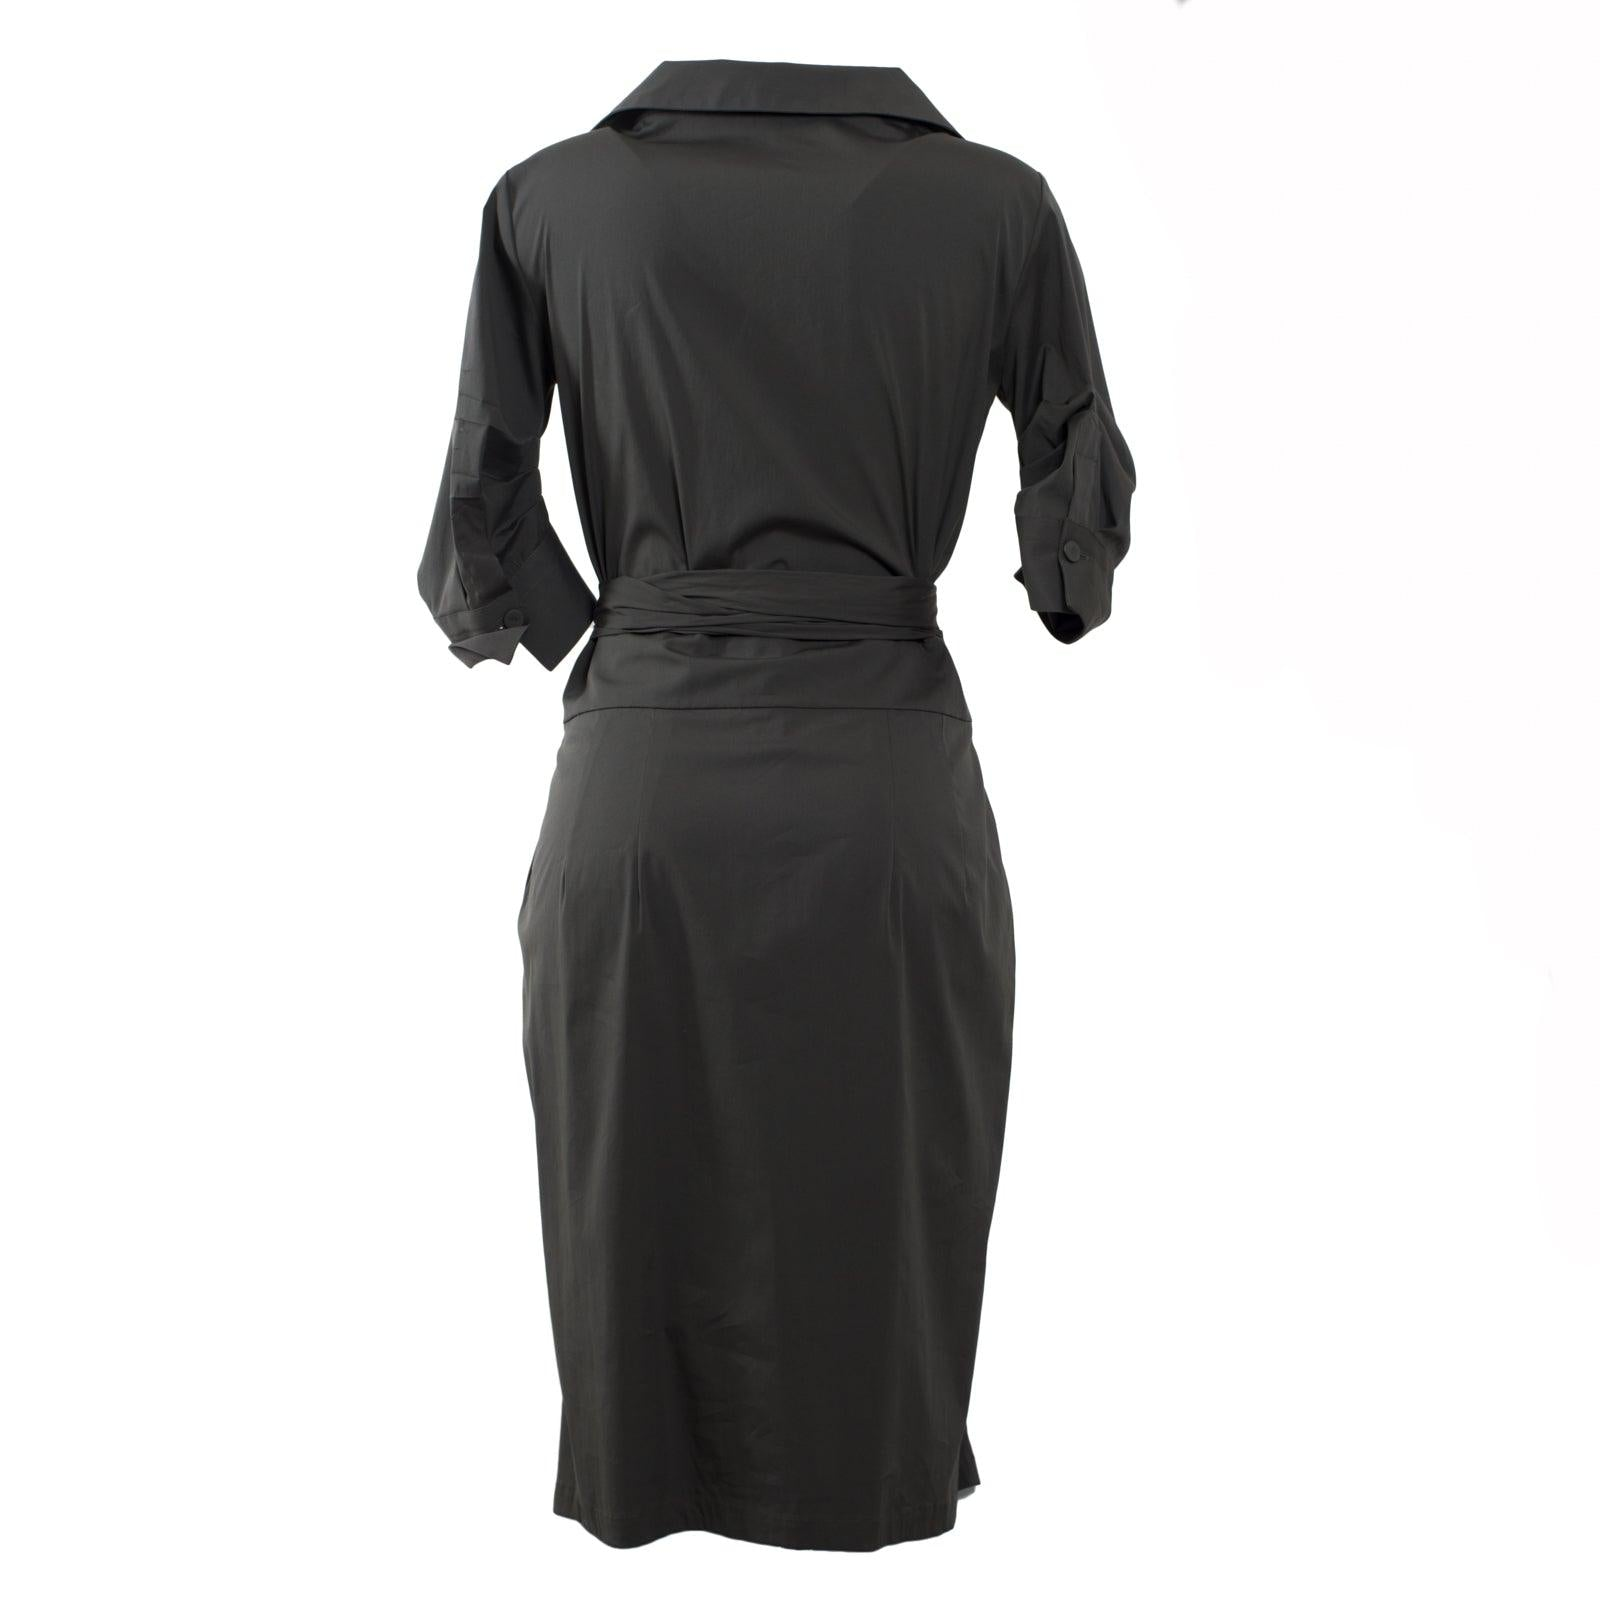 Jennifer Tattanelli crafted in Florence this women dress. A vibrant black poplin stretch-cotton shirtdress, boasts plenty of vintage charm thanks to artfully pleated three-quarter sleeves and a midi-length skirt